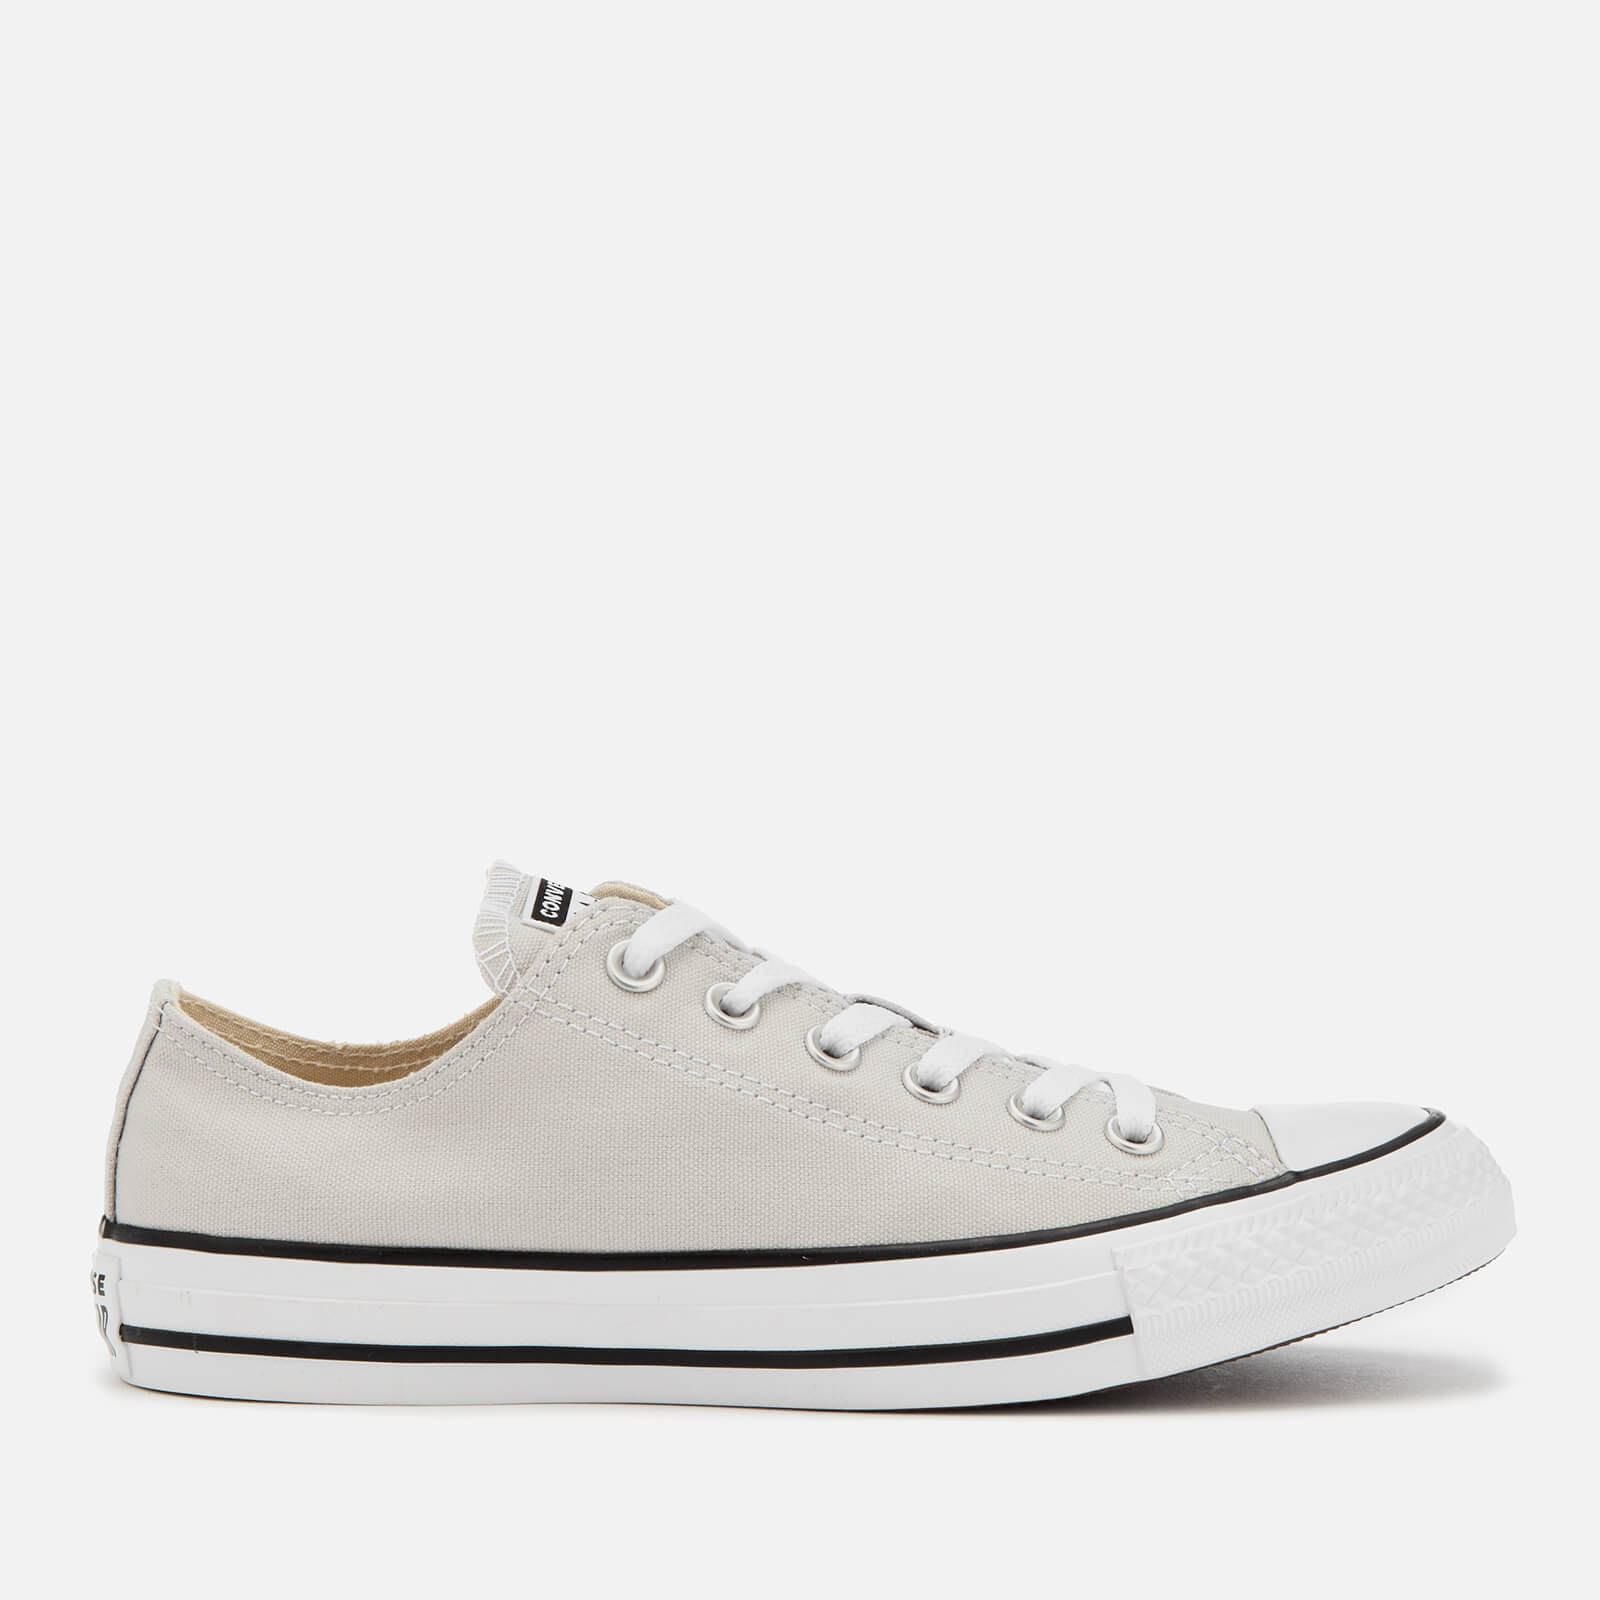 897388a9f085b Converse Chuck Taylor All Star Seasonal Ox Trainers - Mouse Grey - Free UK  Delivery over £50